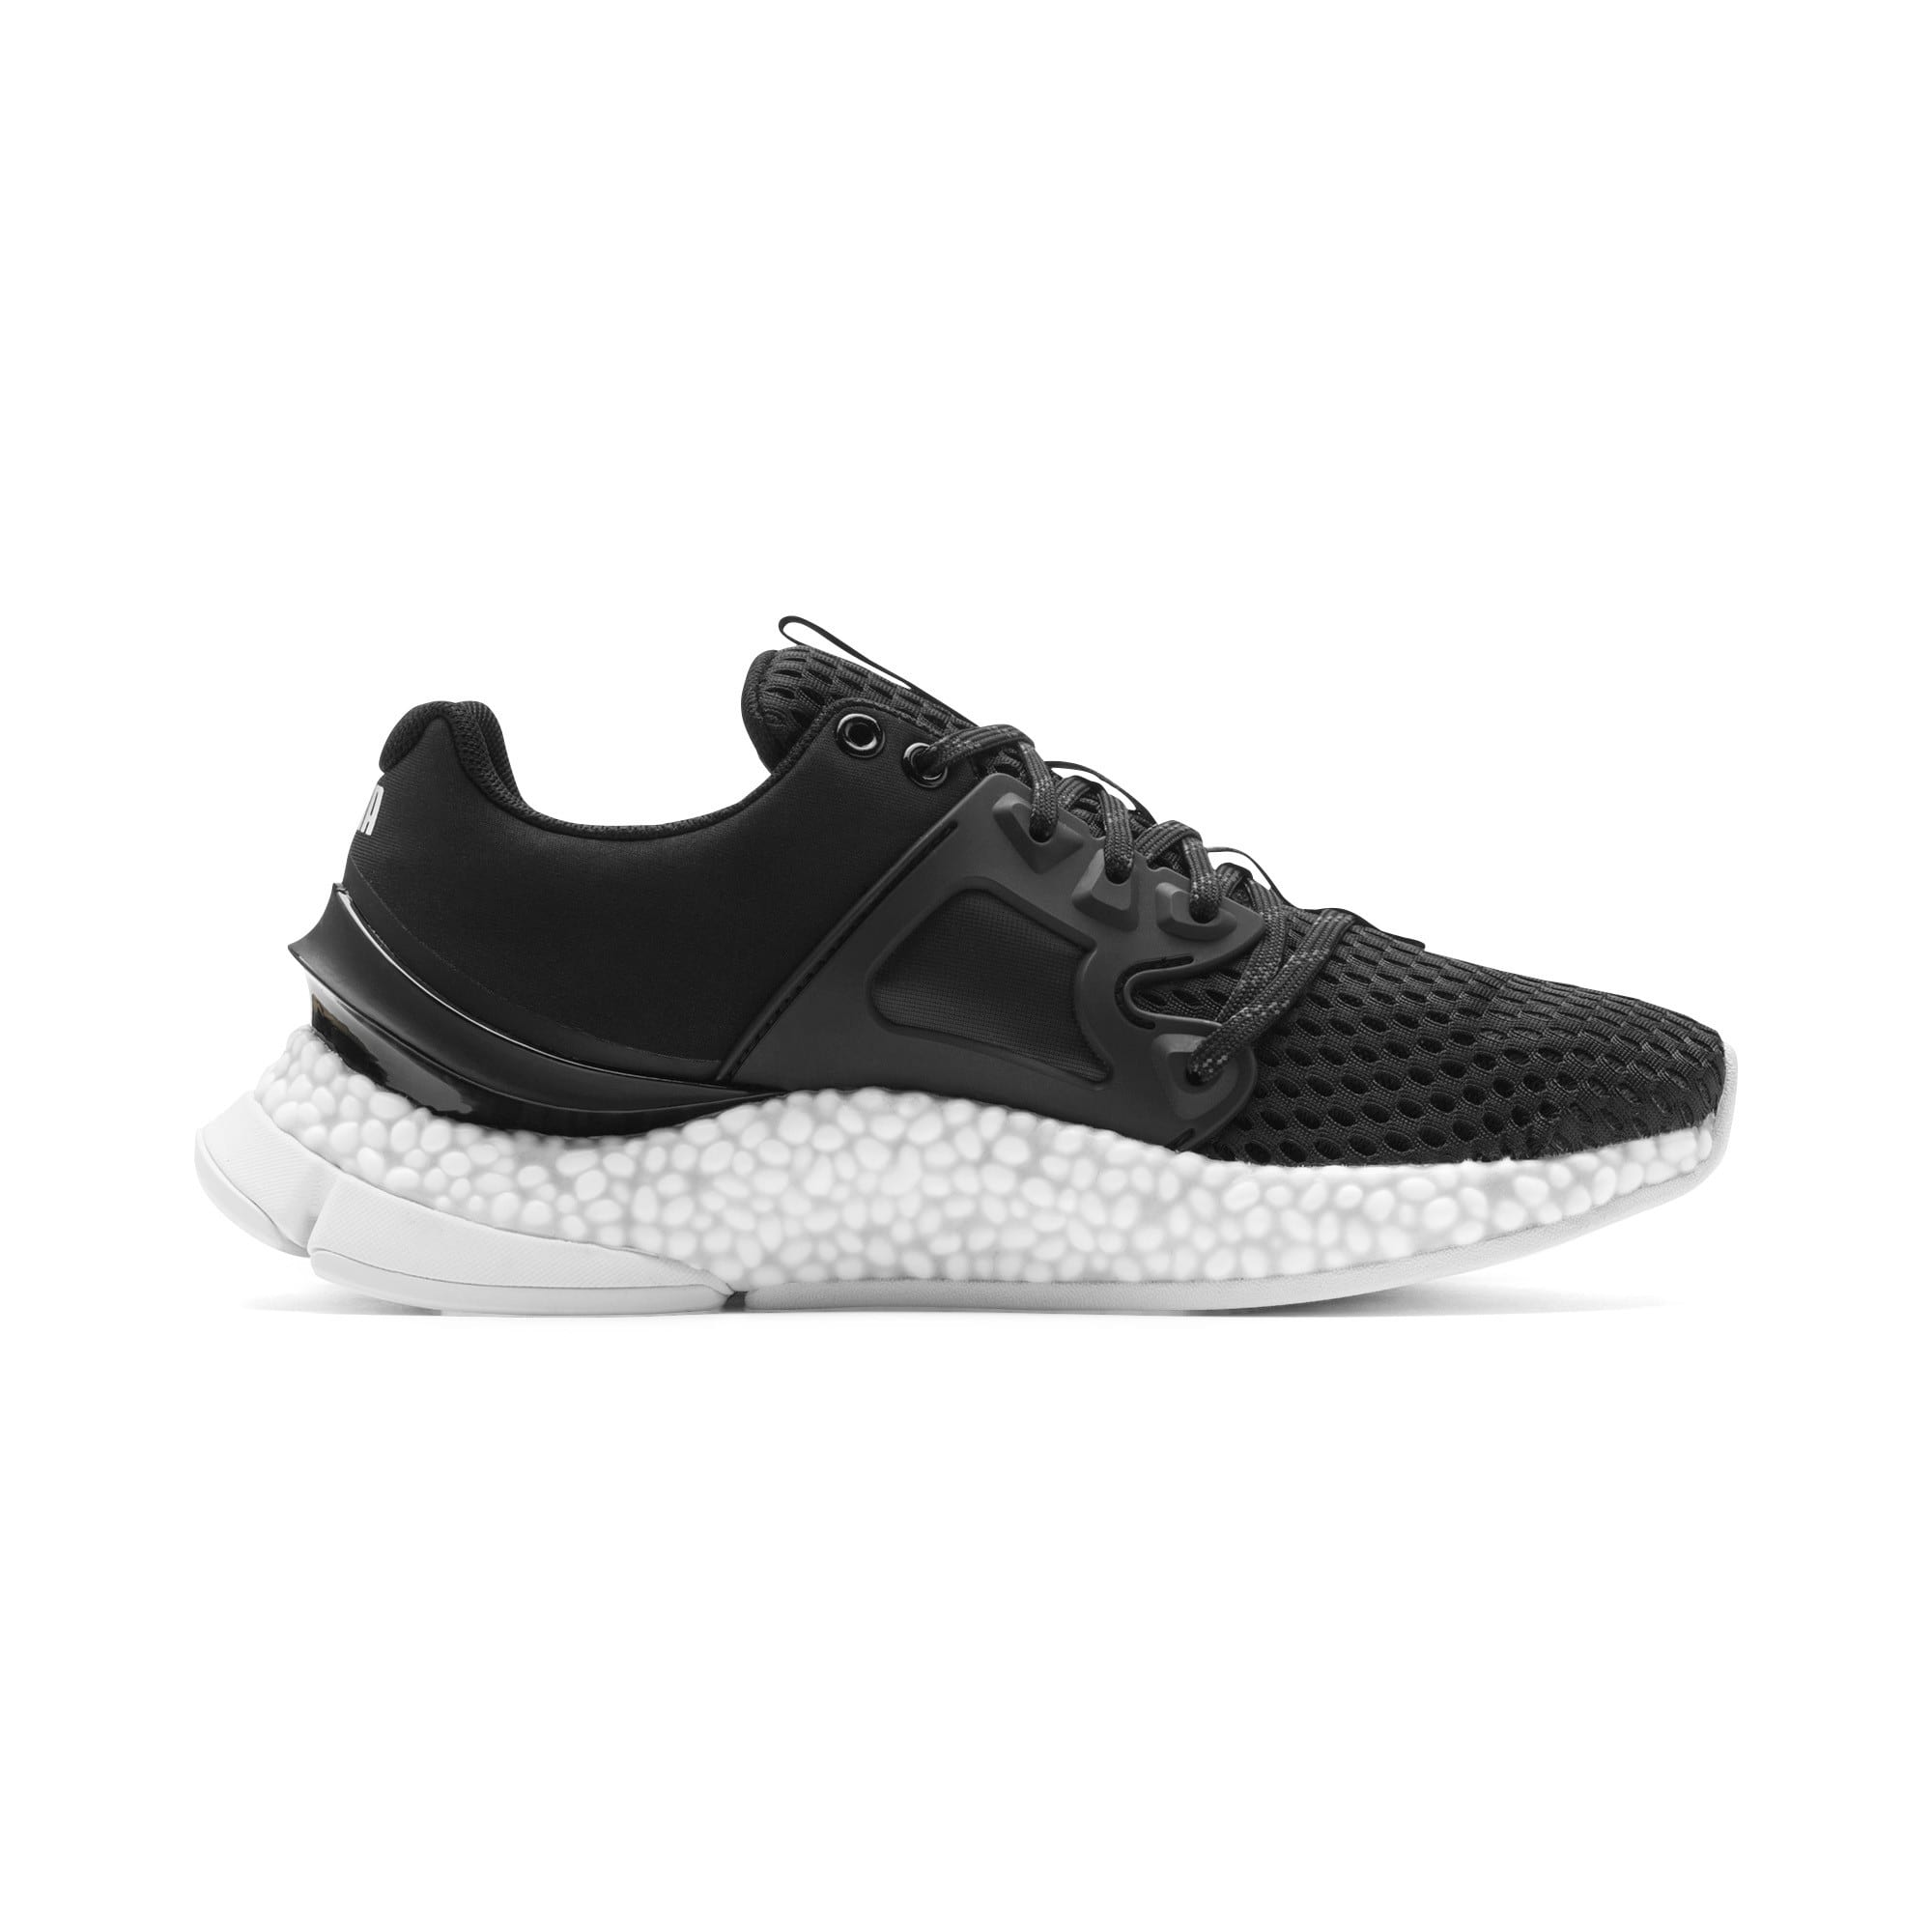 Thumbnail 7 of HYBRID Sky Women's Running Shoes, Puma Black-Puma White, medium